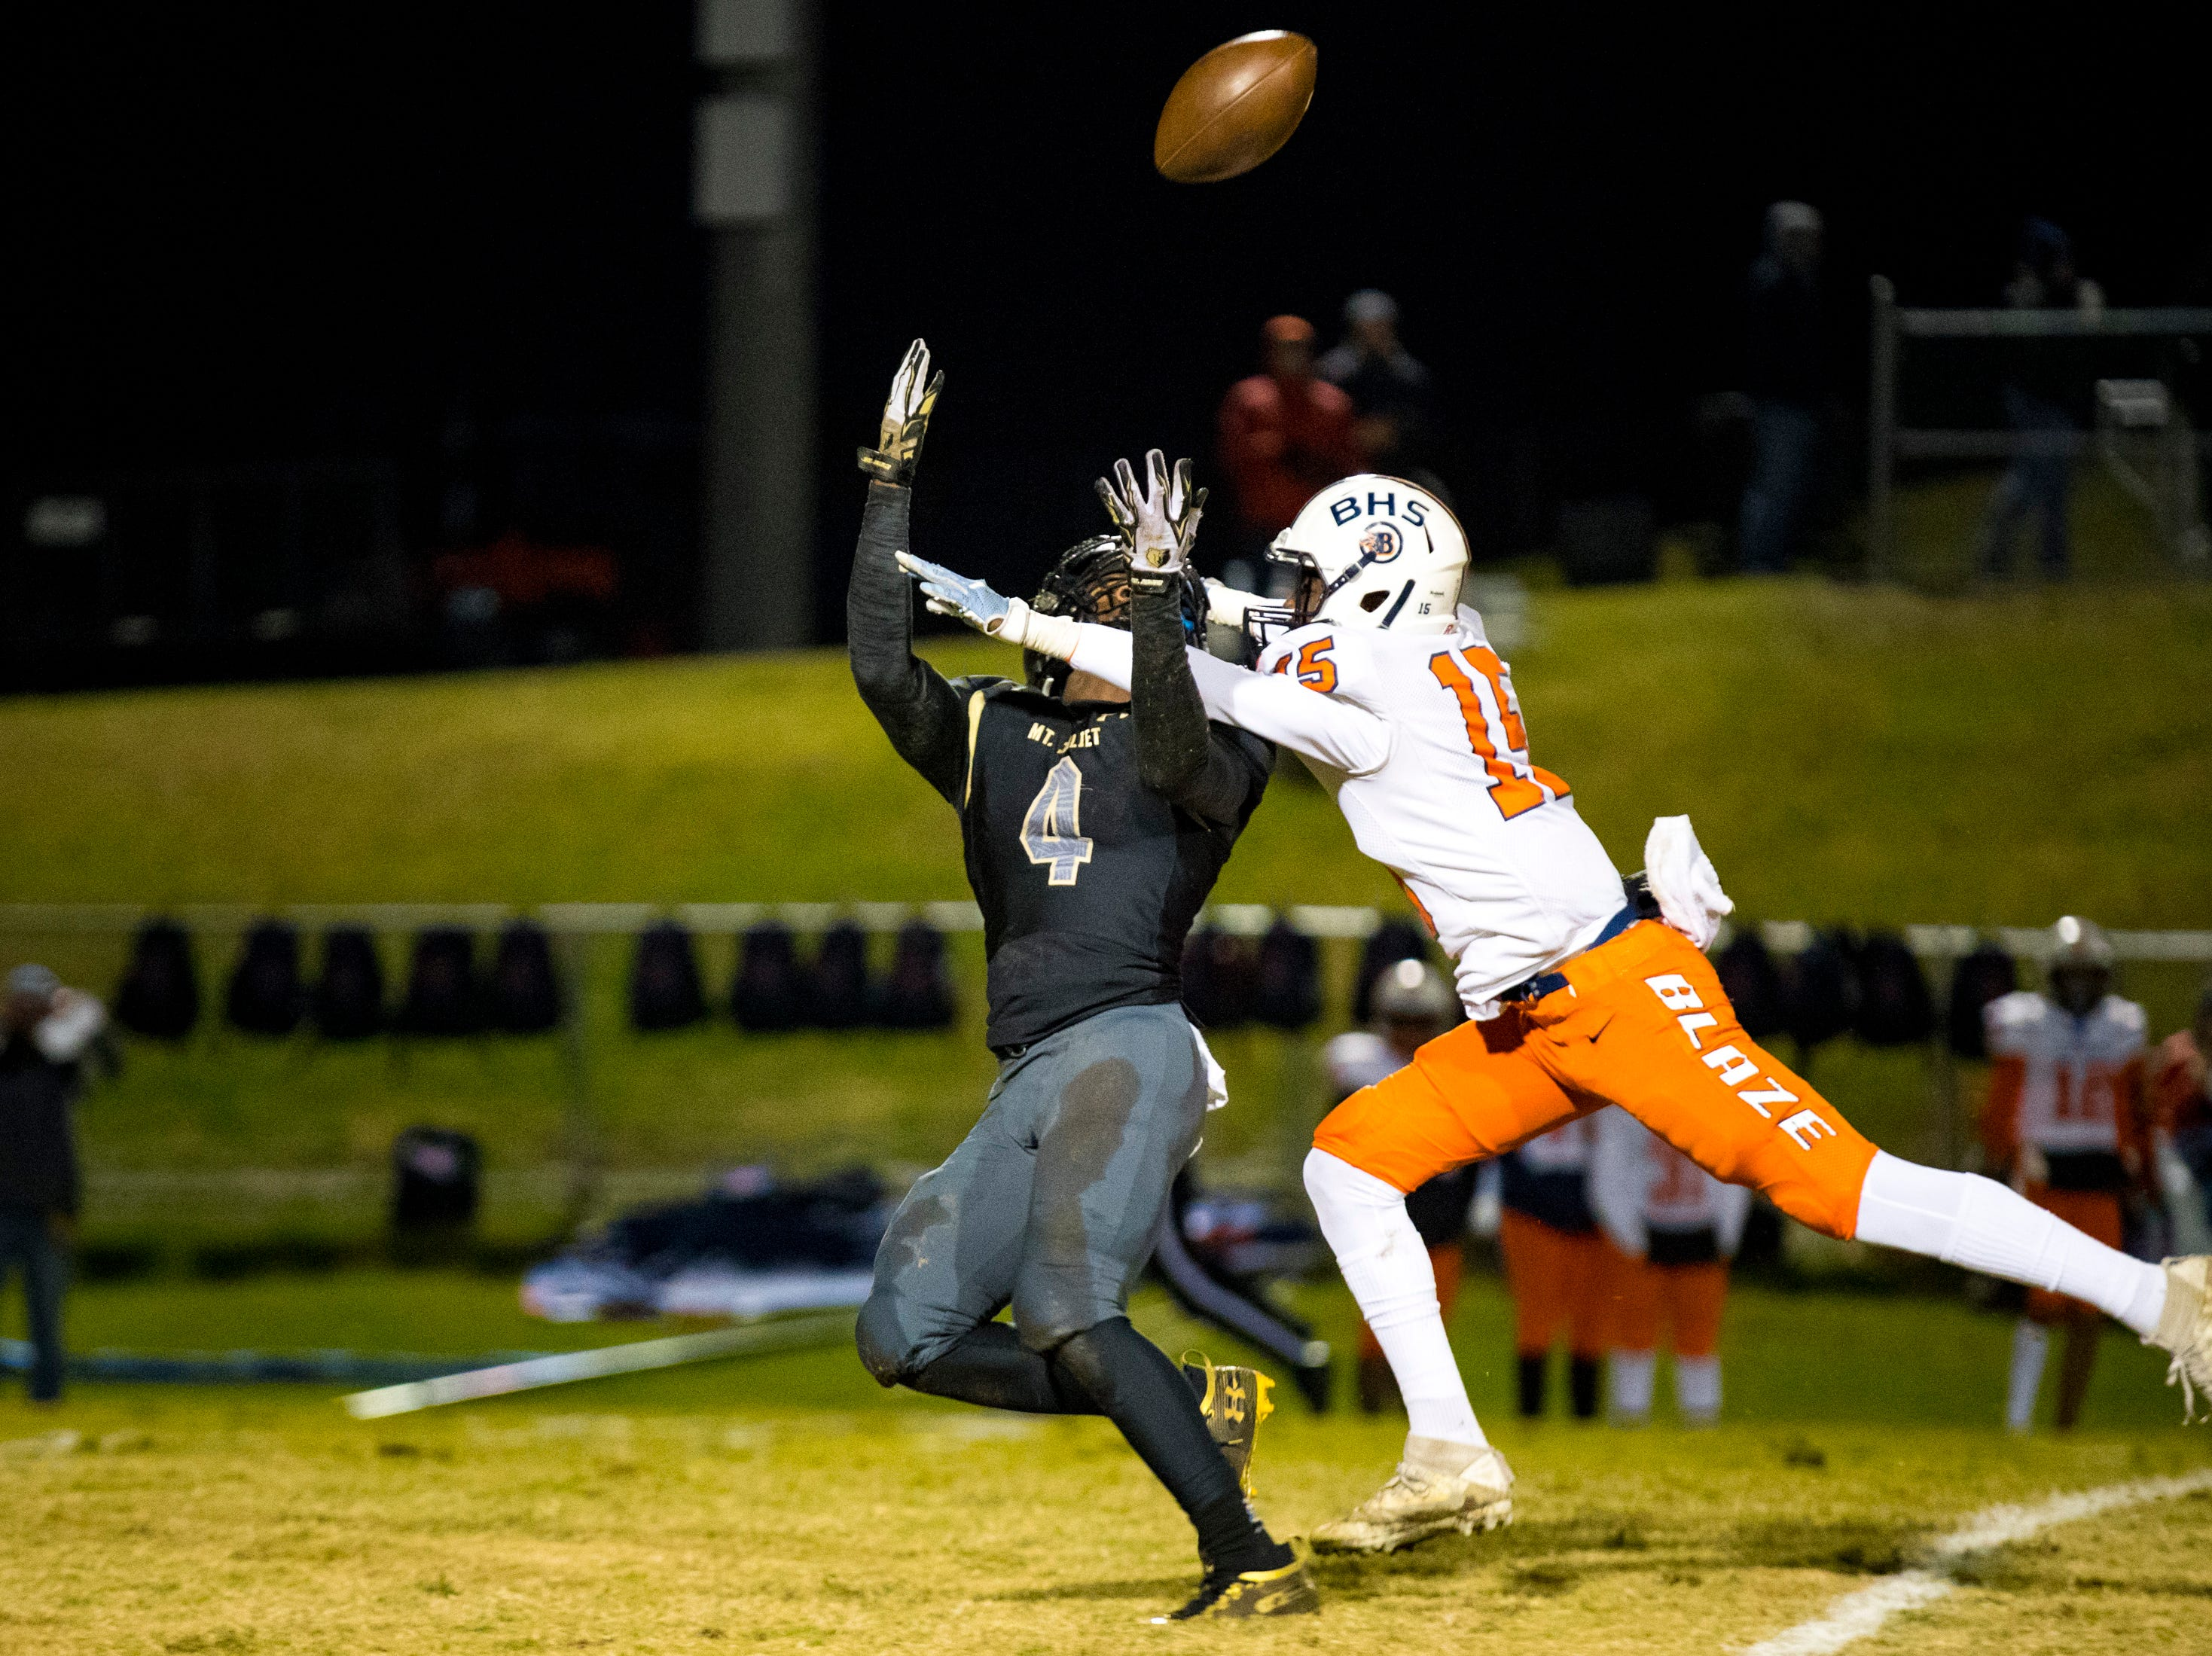 Blackman's Camden Williams (15) defends a pass intended for Mt. Juliet's Michael Ruttlen (4) during Mt. Juliet's game against Blackman at Mt. Juliet High School in Mt. Juliet on Friday, Nov. 9, 2018.